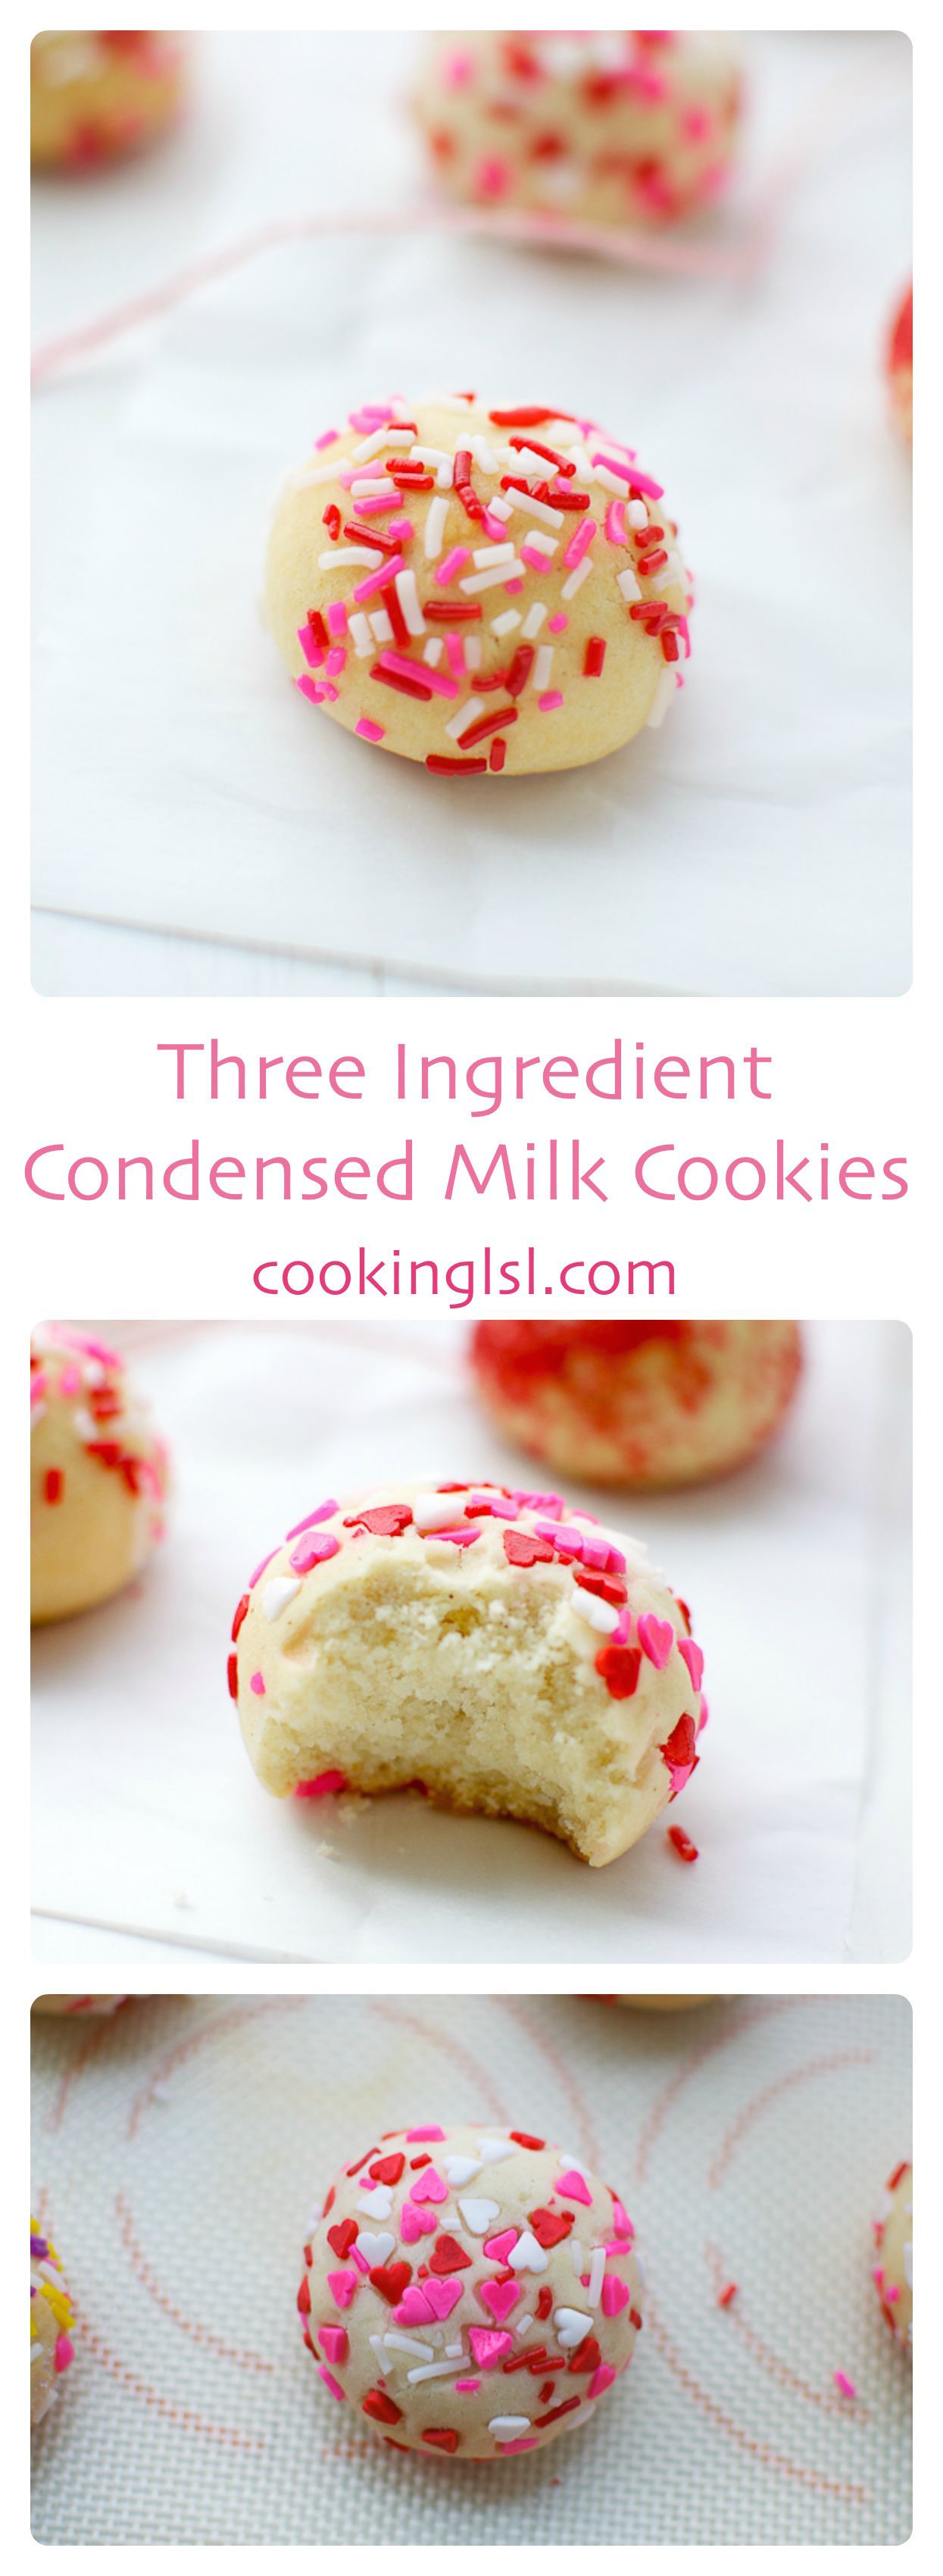 Condensed Milk Cookies Condensed Milk Recipes Desserts Milk Recipes Dessert Condensed Milk Cookies